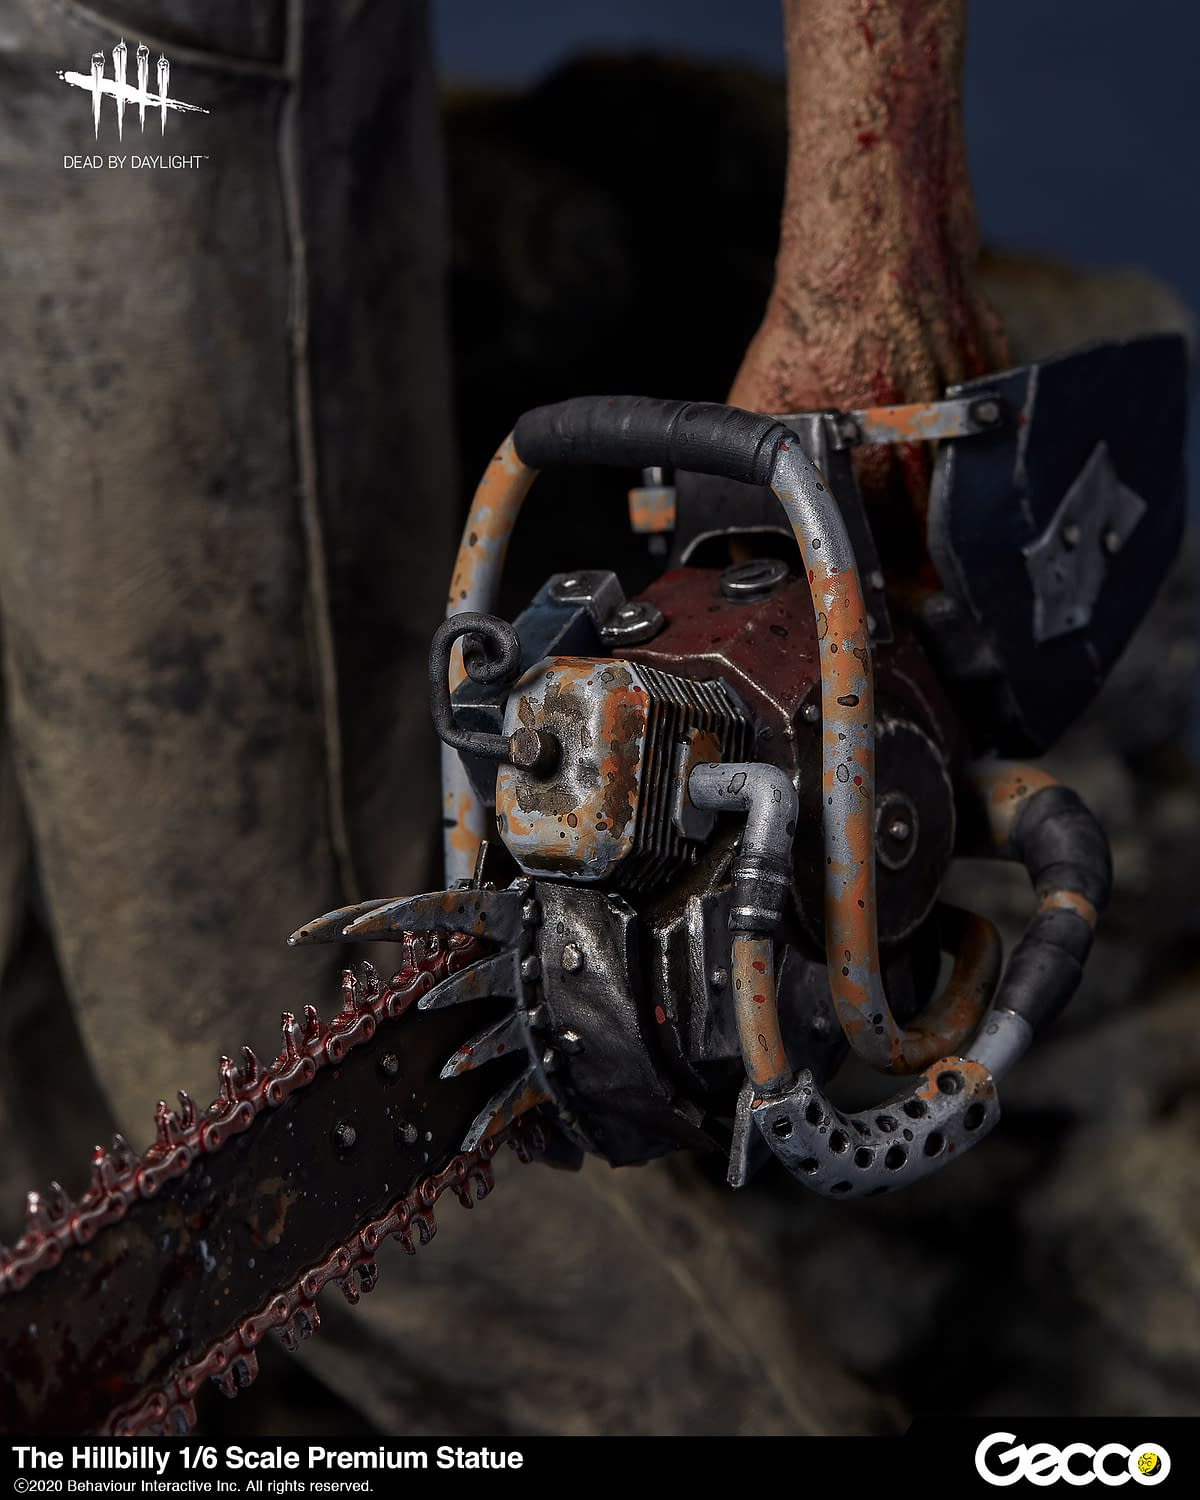 Gecco-Dead-by-Daylight-Hillbilly-Statue-019